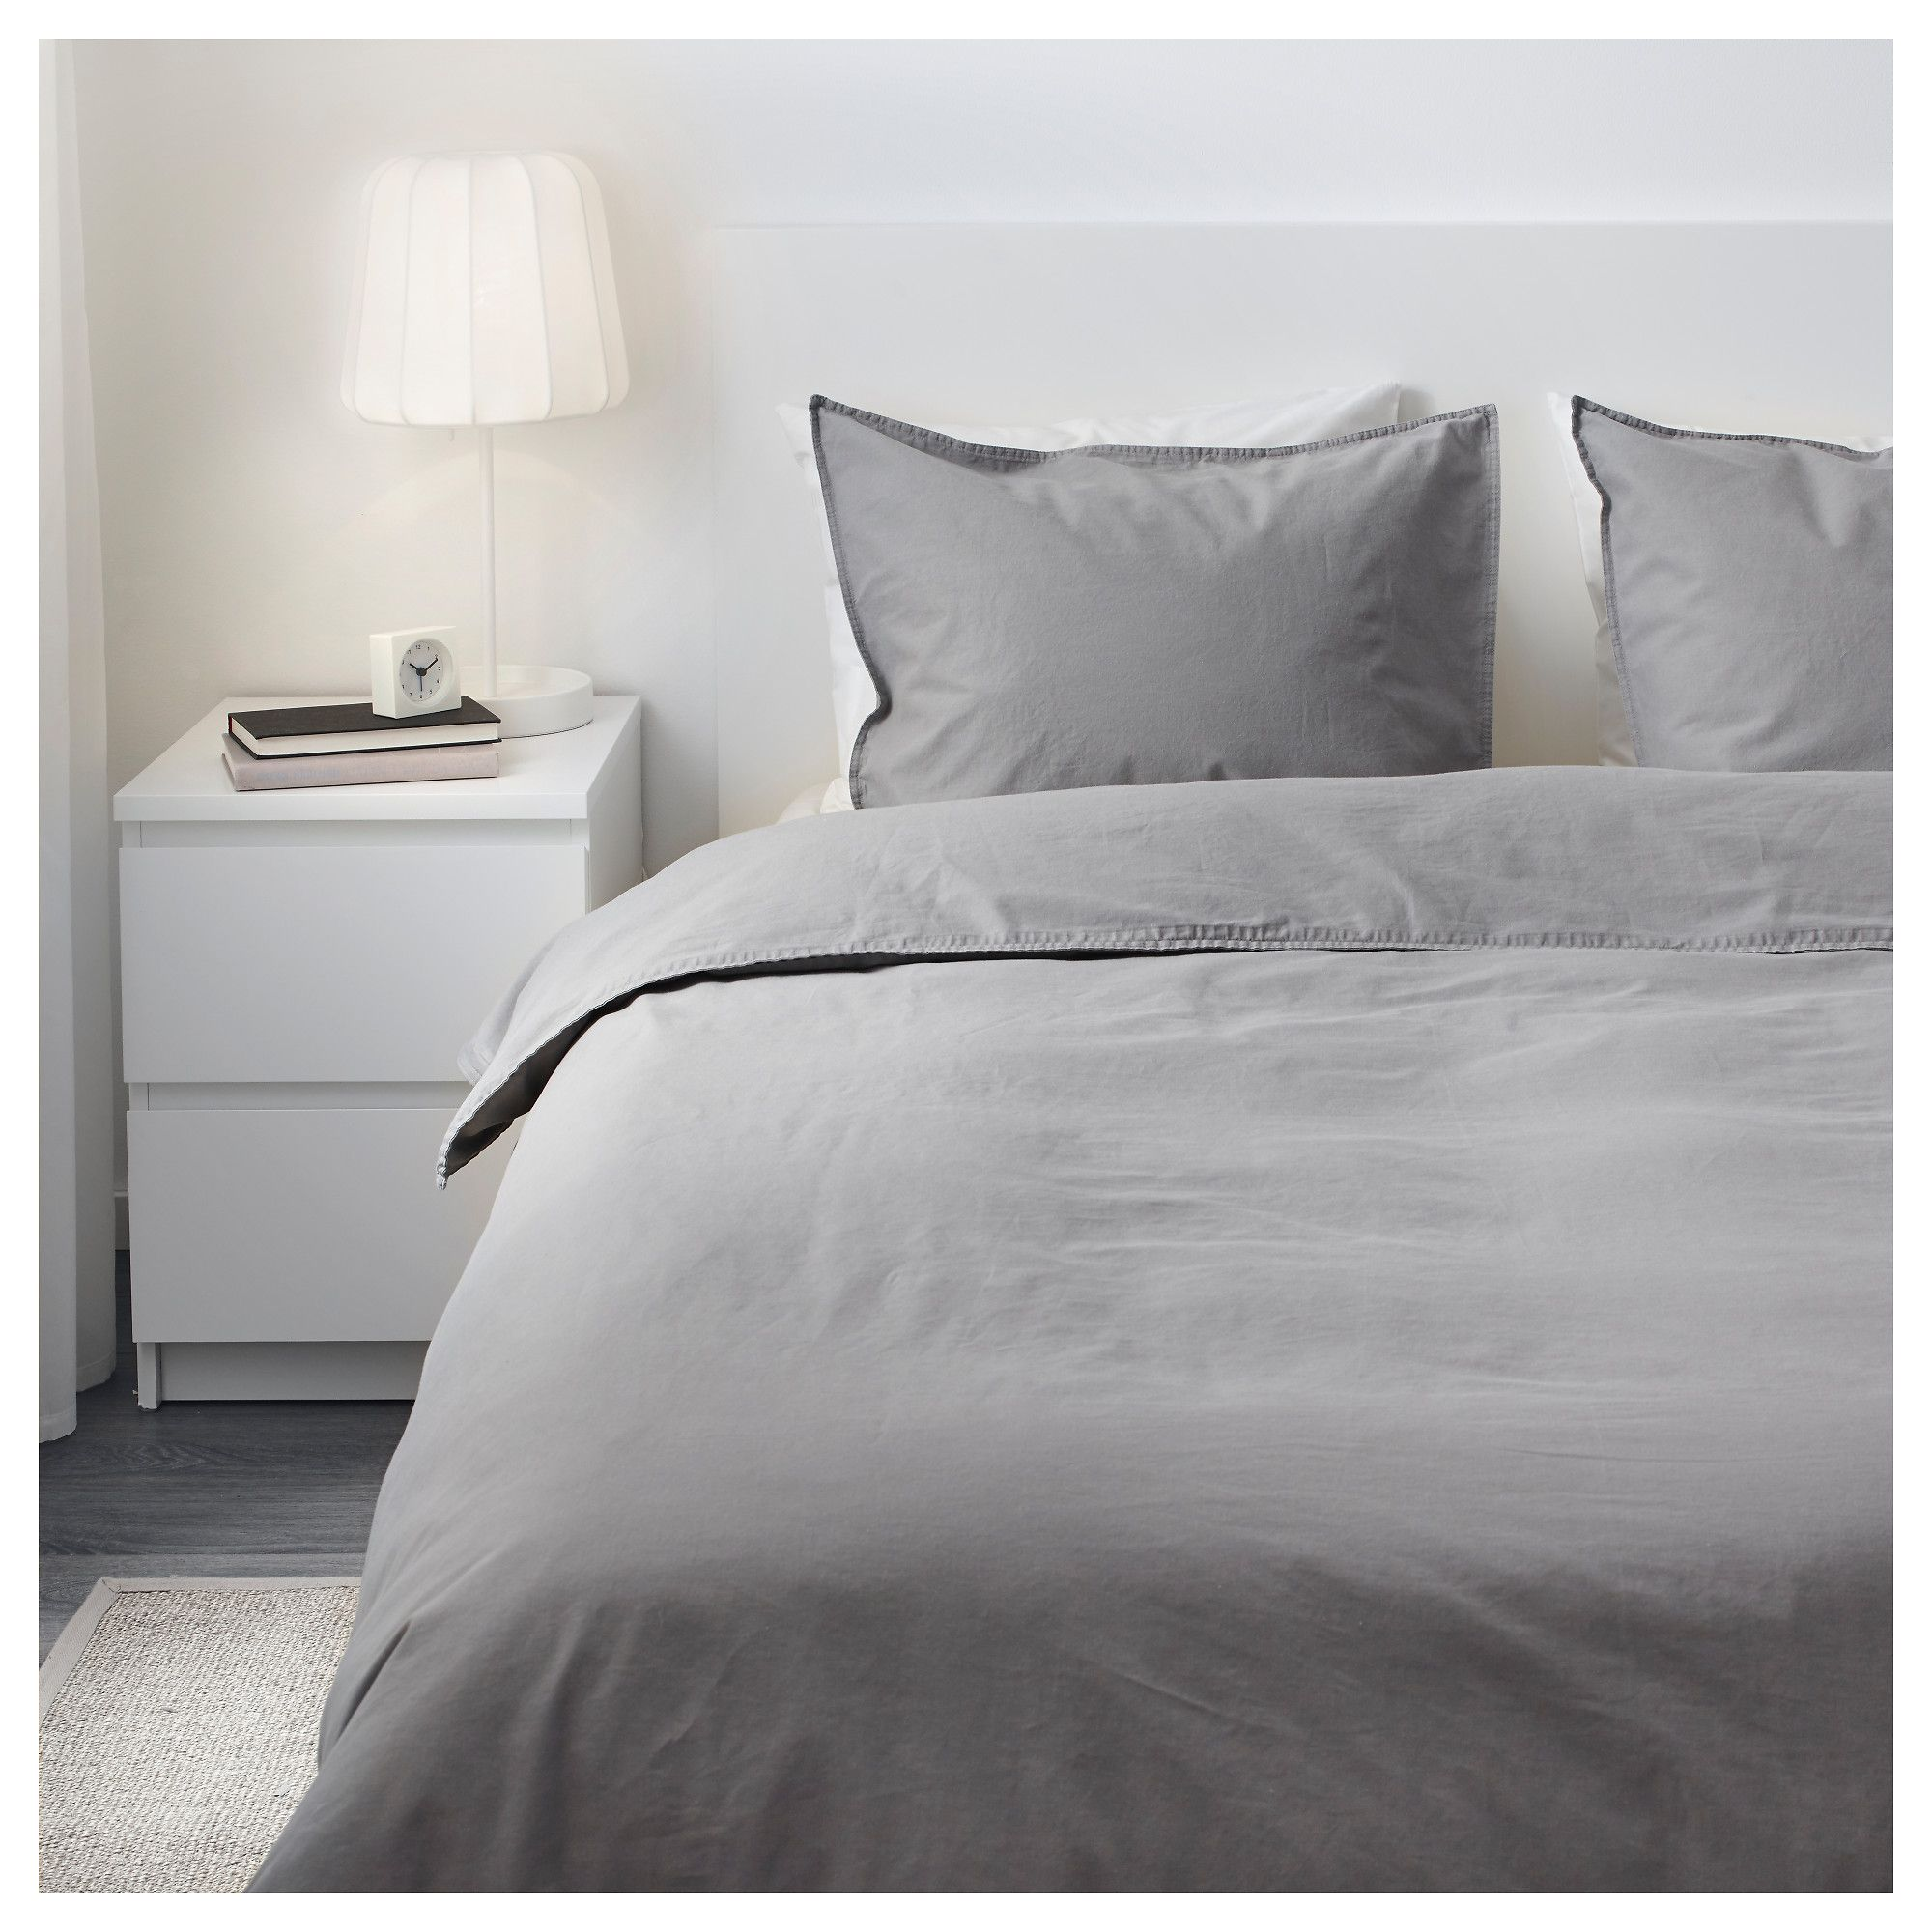 Shop for Furniture, Home Accessories & More Gray duvet